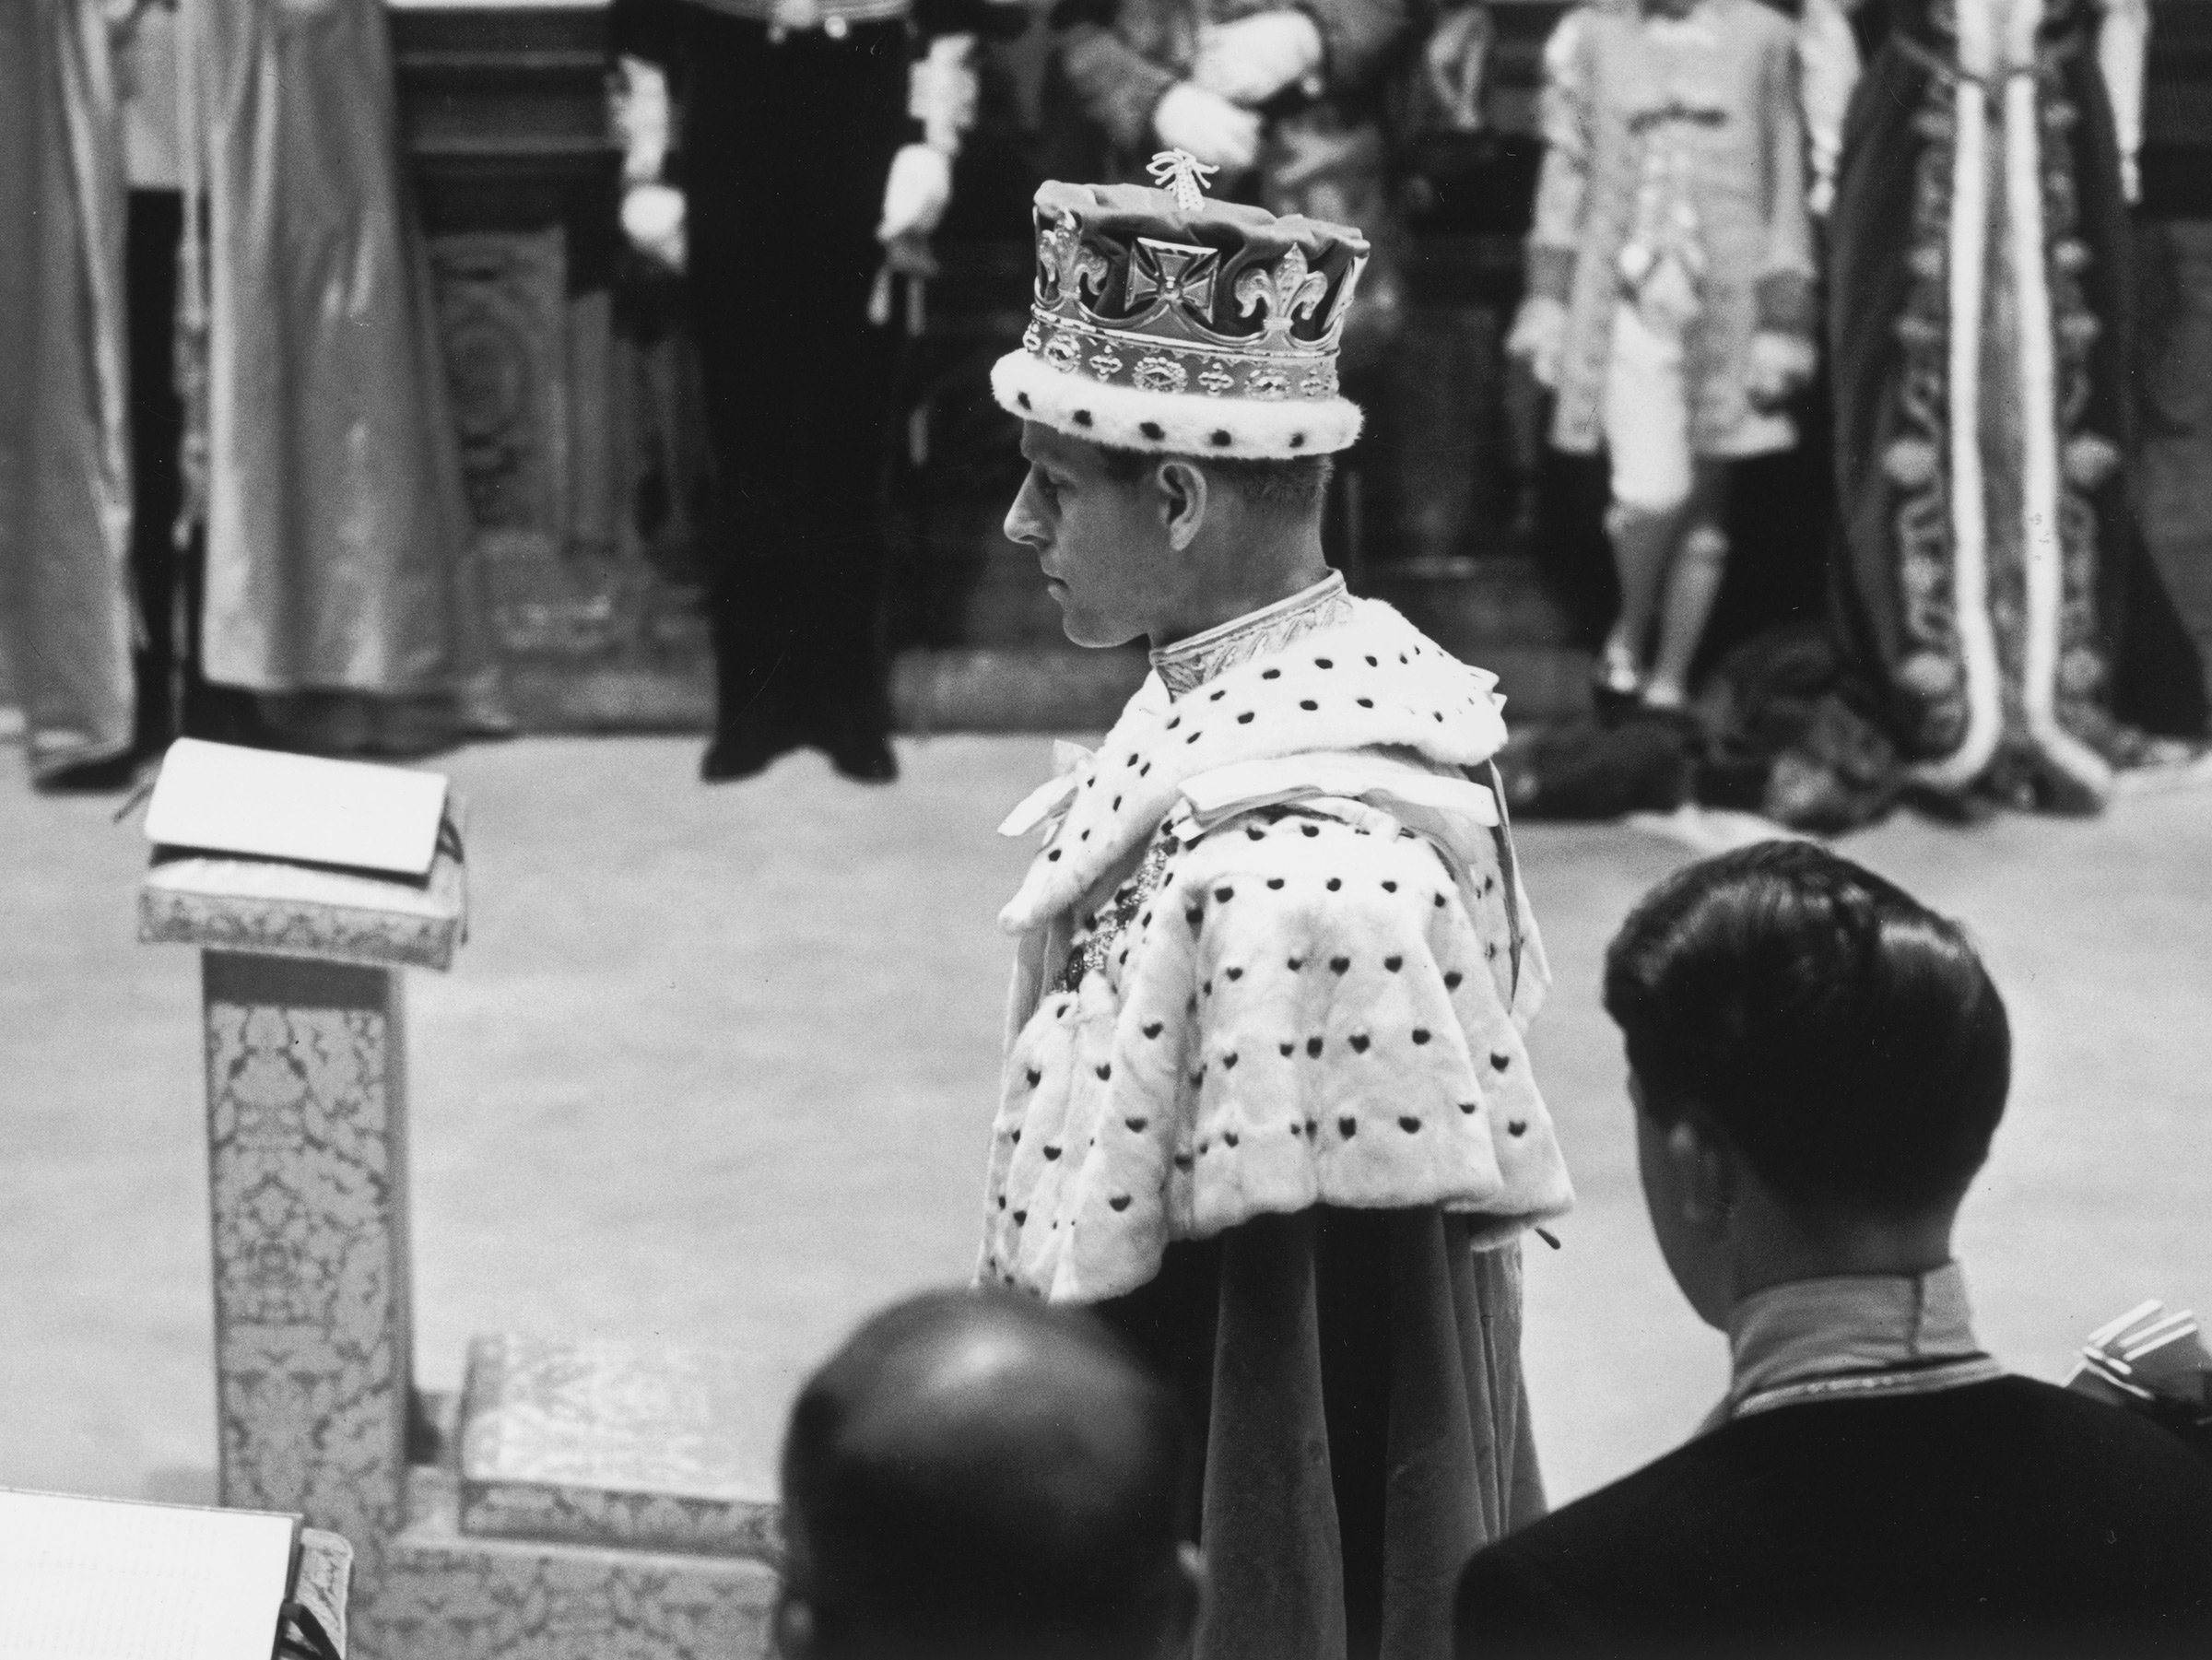 The Duke of Edinburgh attends the coronation ceremony of Queen Elizabeth II at Westminster Abbey, in London, on June 2, 1953.